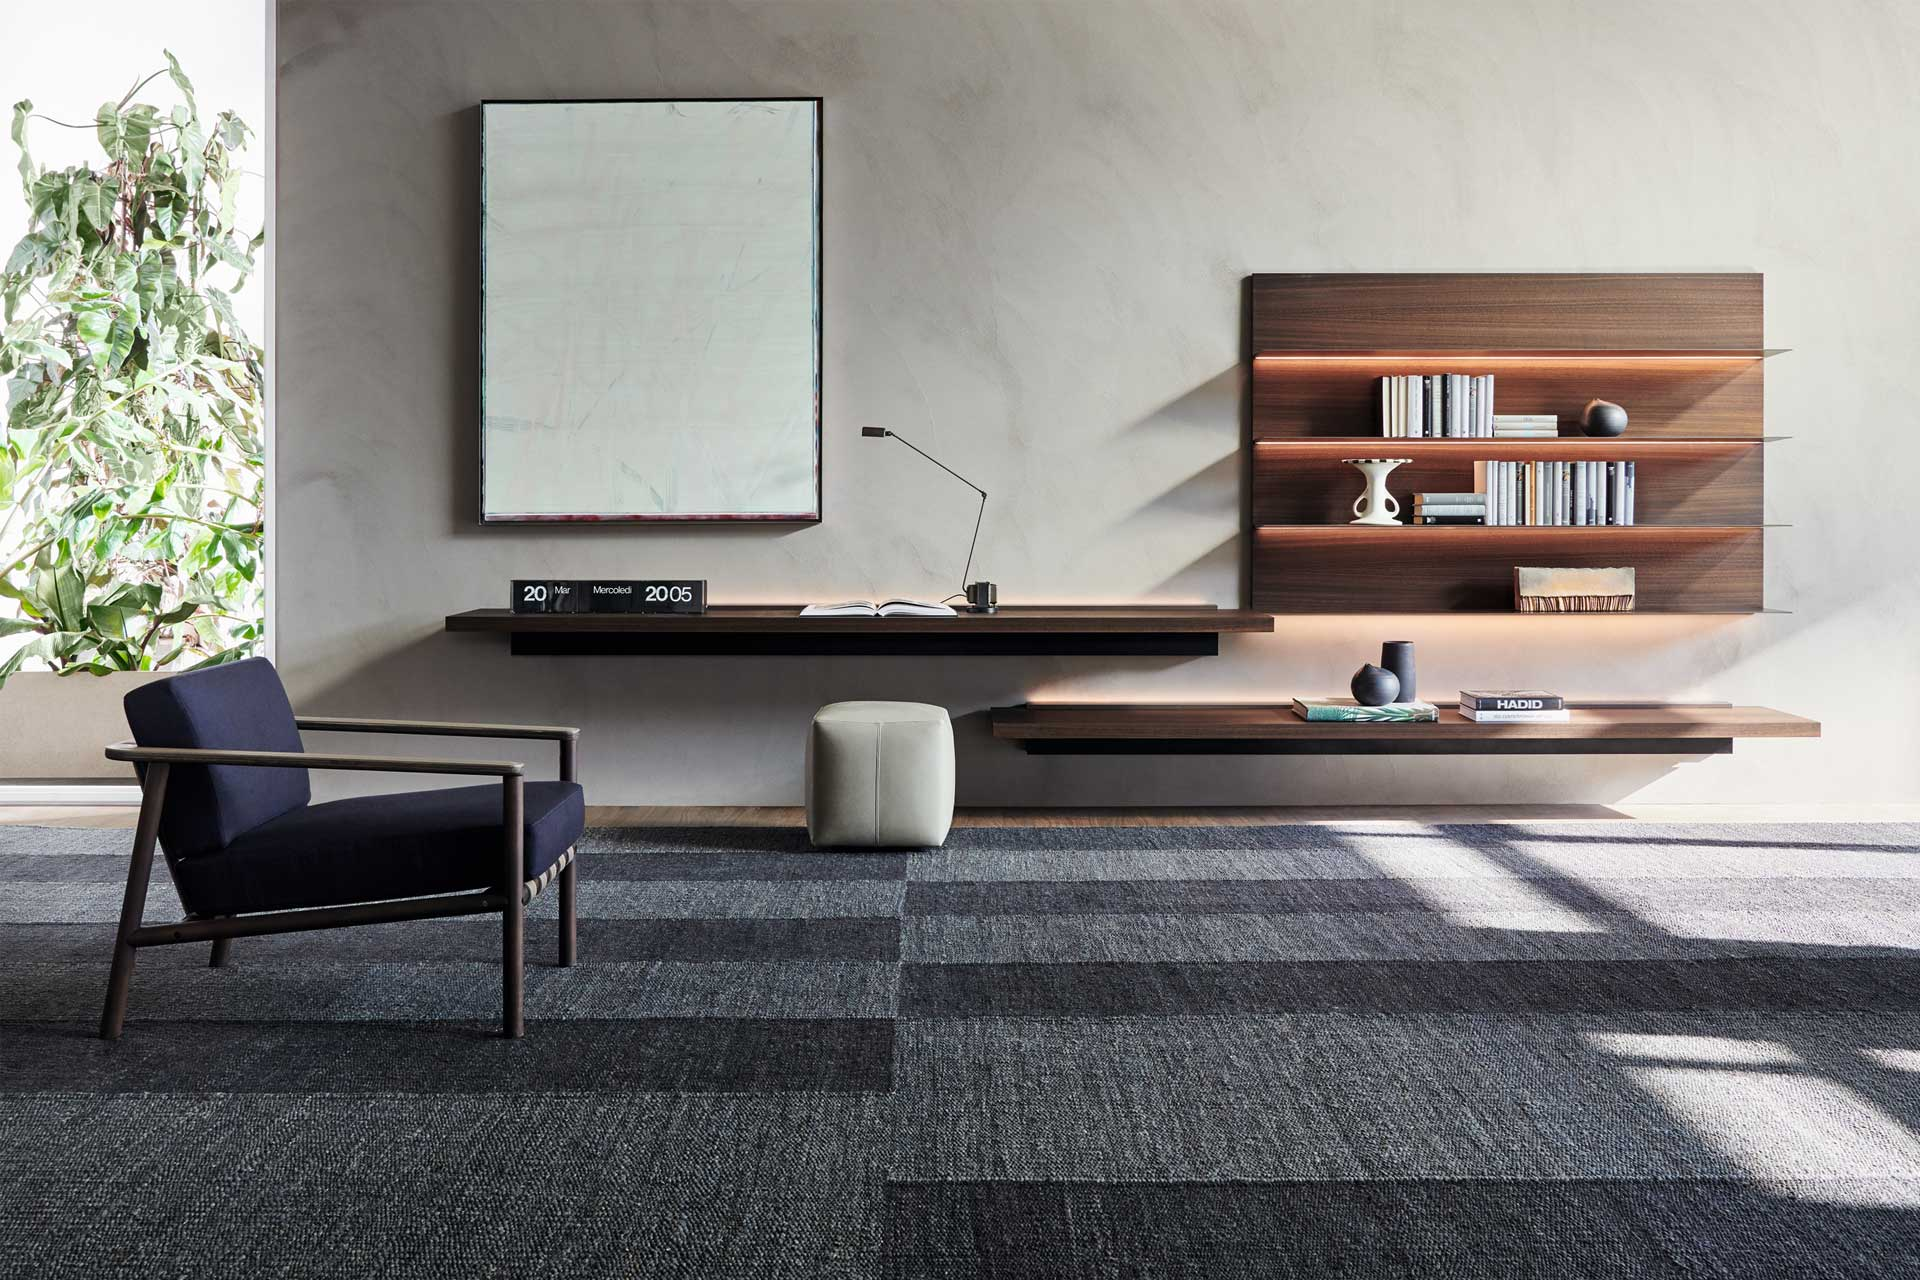 Gillis, one of Van Duysen's pieces for Molteni & C, is a low armchair designed specifically for the hospitality sector